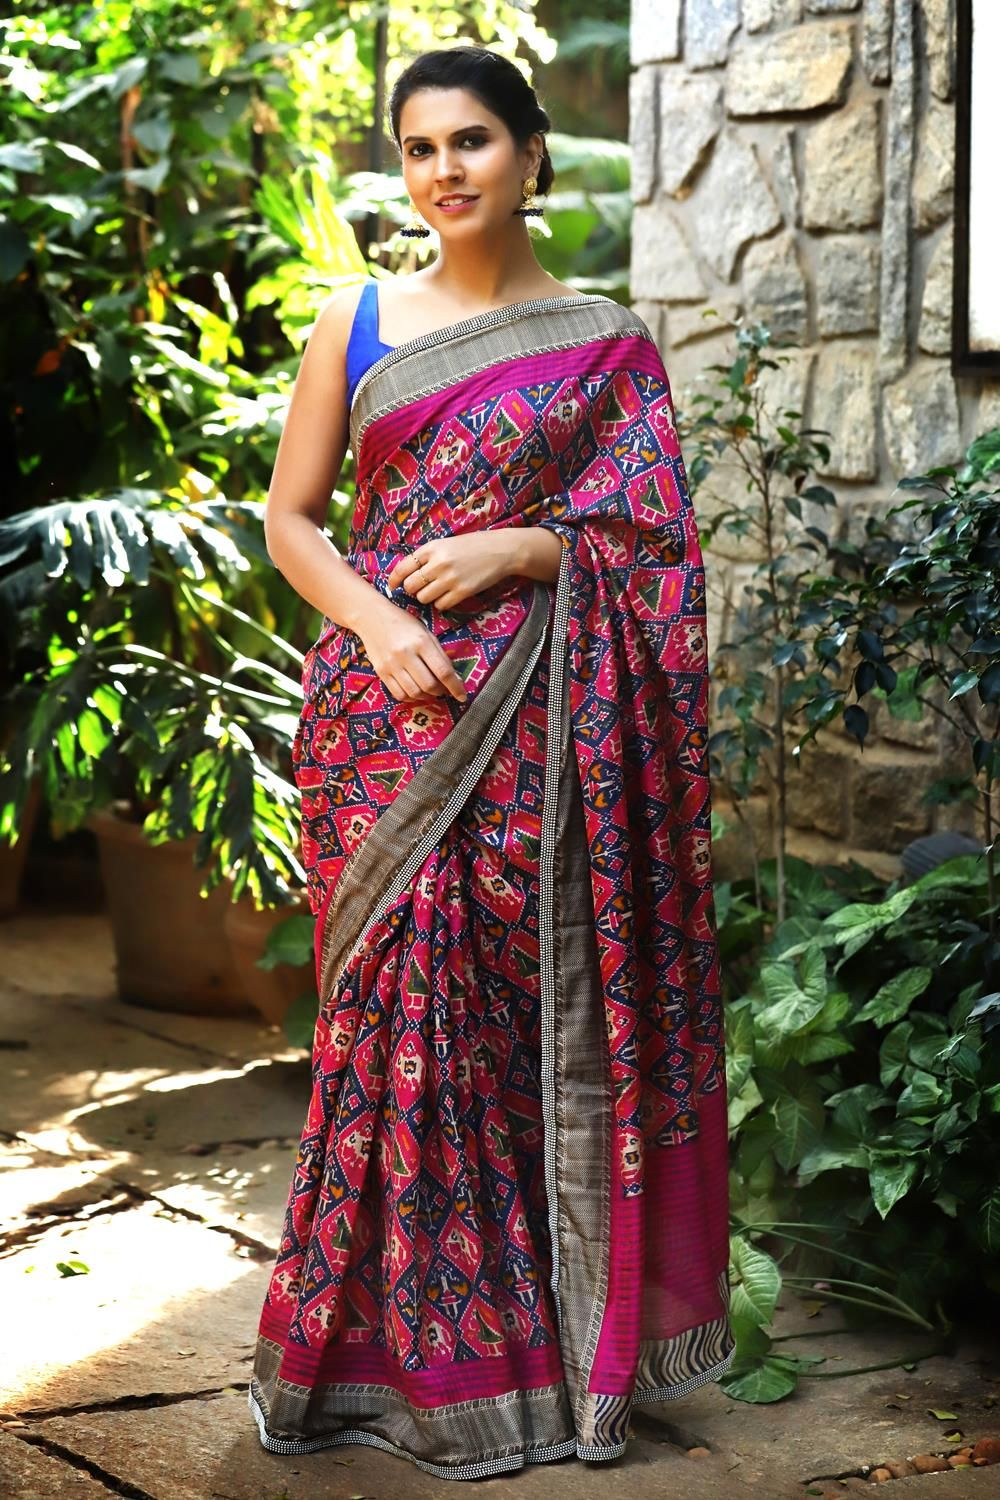 fbebc1262c2f88 Dark pink and blue jute saree with Patola print and pearl border #saree  #blouse #houseofblouse #indian #bollywood #style #designer #pink #blue  #black #jute ...